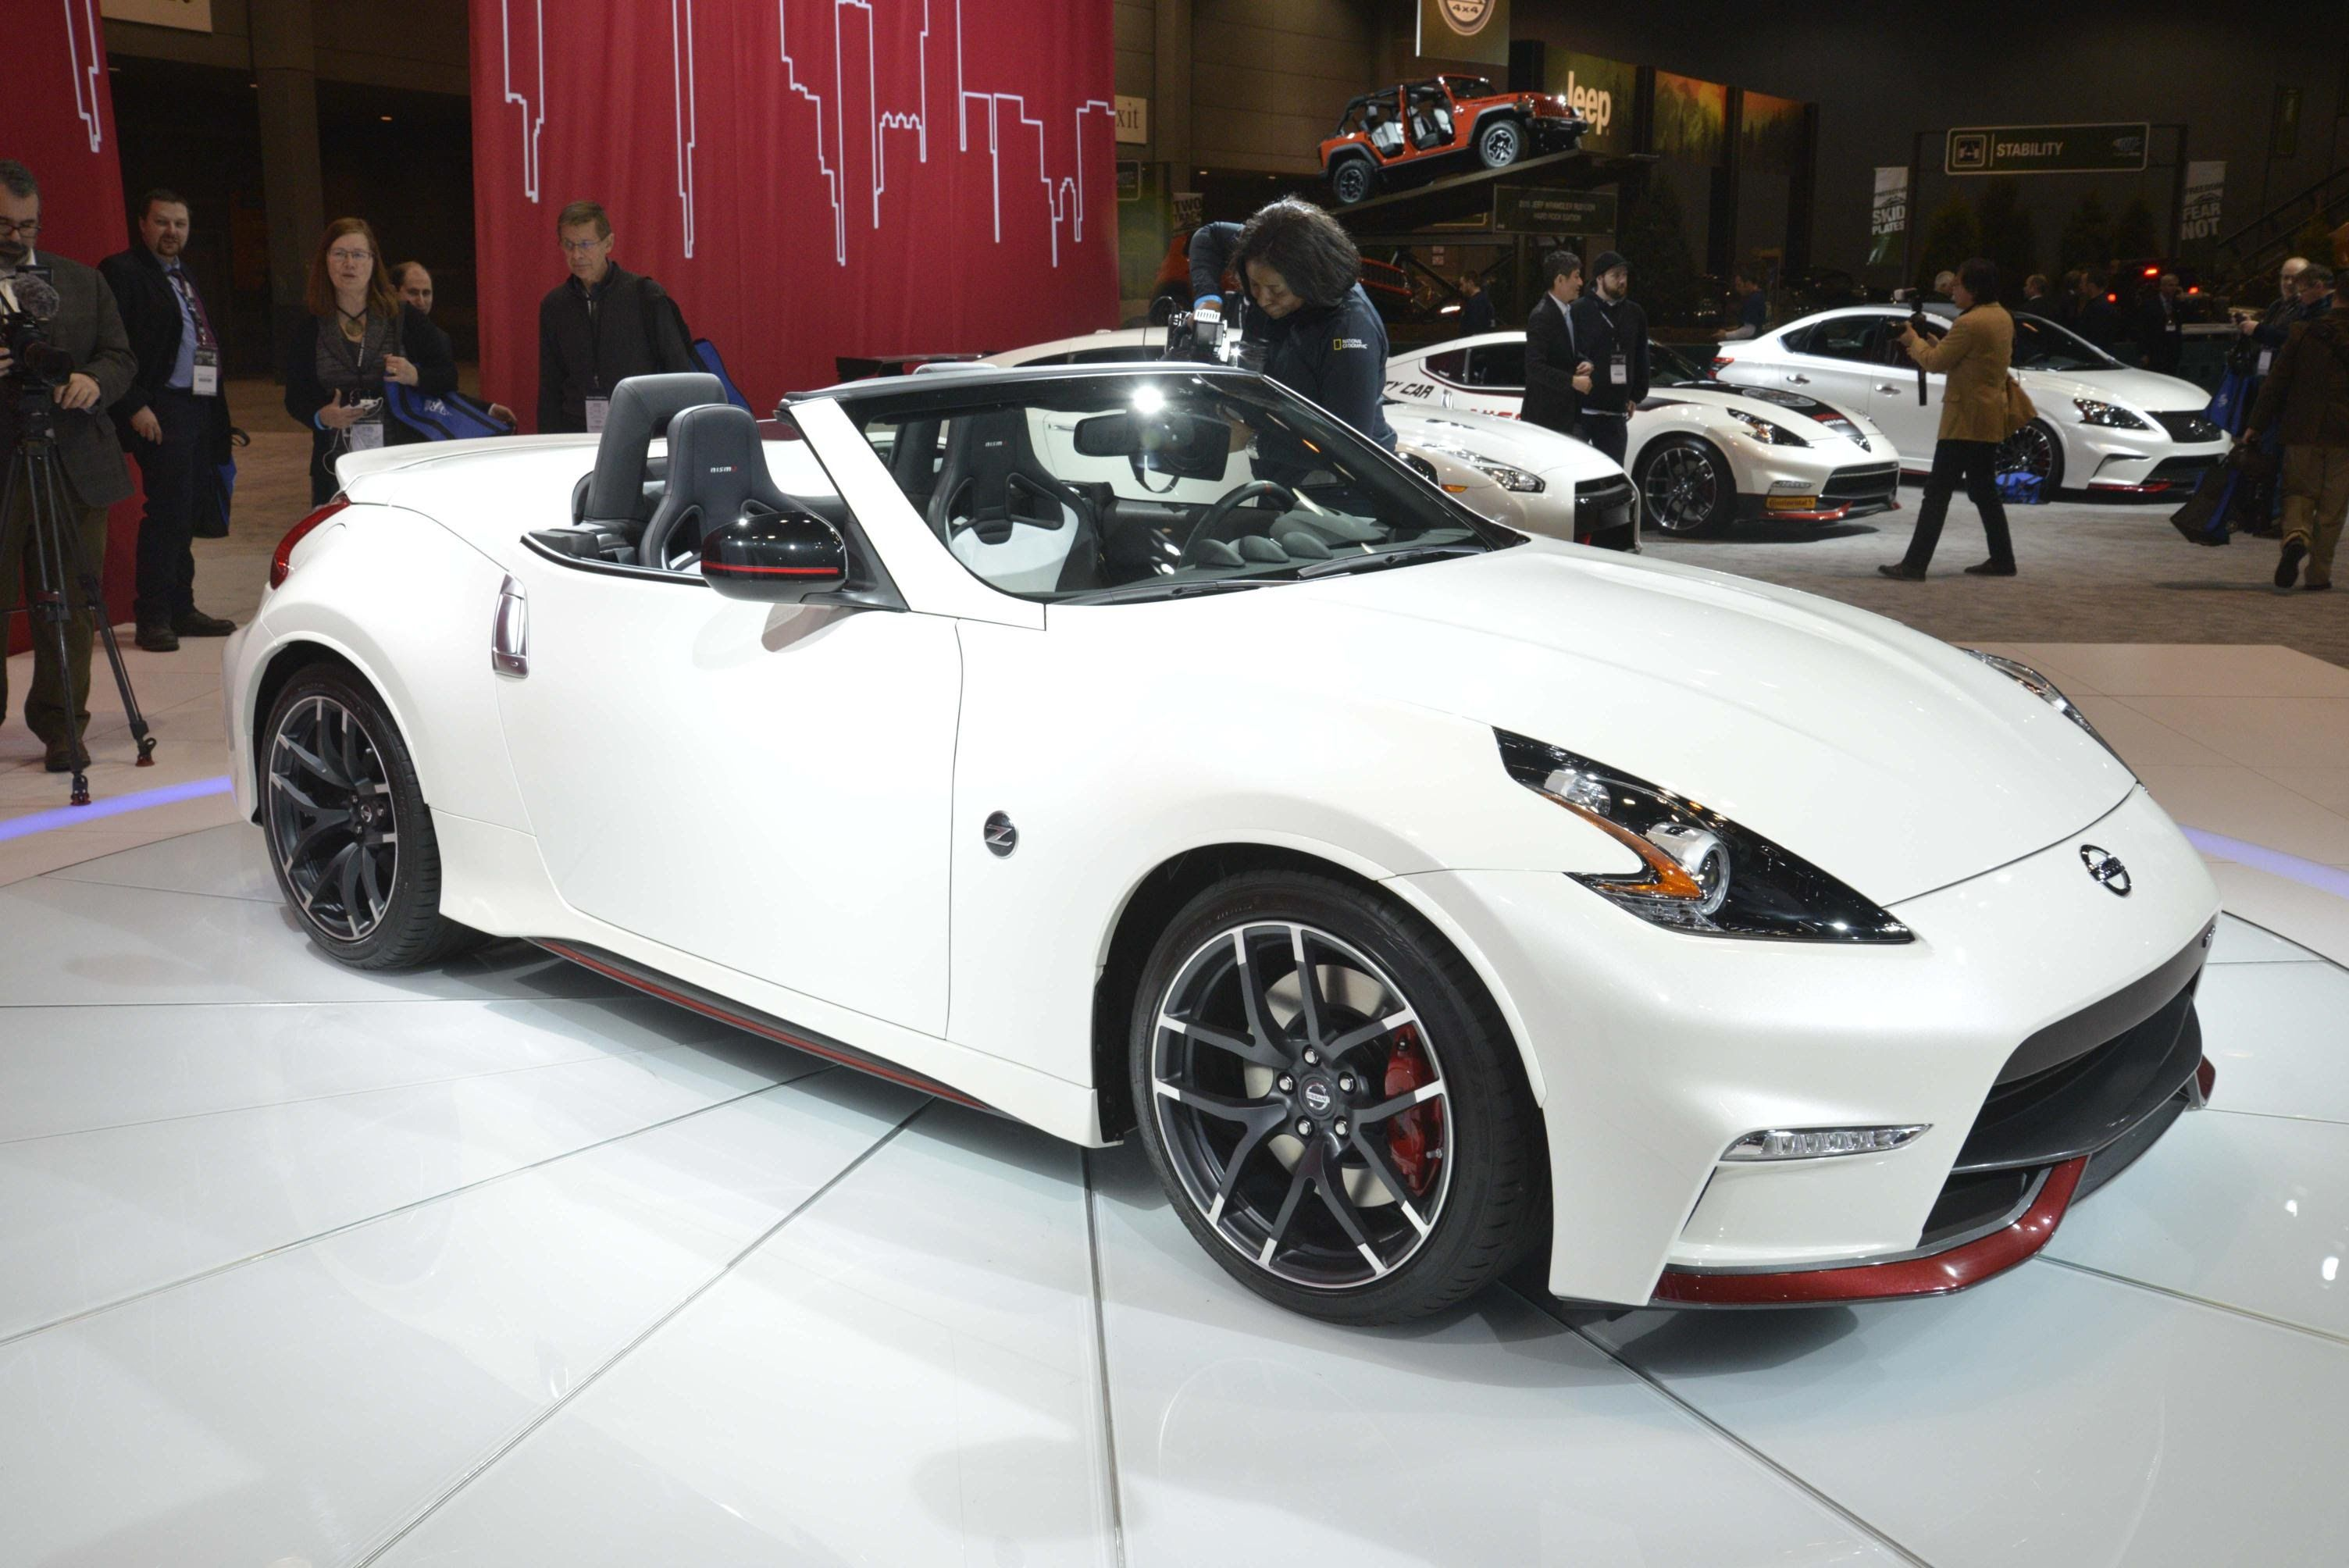 2016 Nissan 370z Convertible S Most Recent Z Auto Is Ostensibly The Best To Date Has A Front Mid Engined Design And All Are Back Wheel